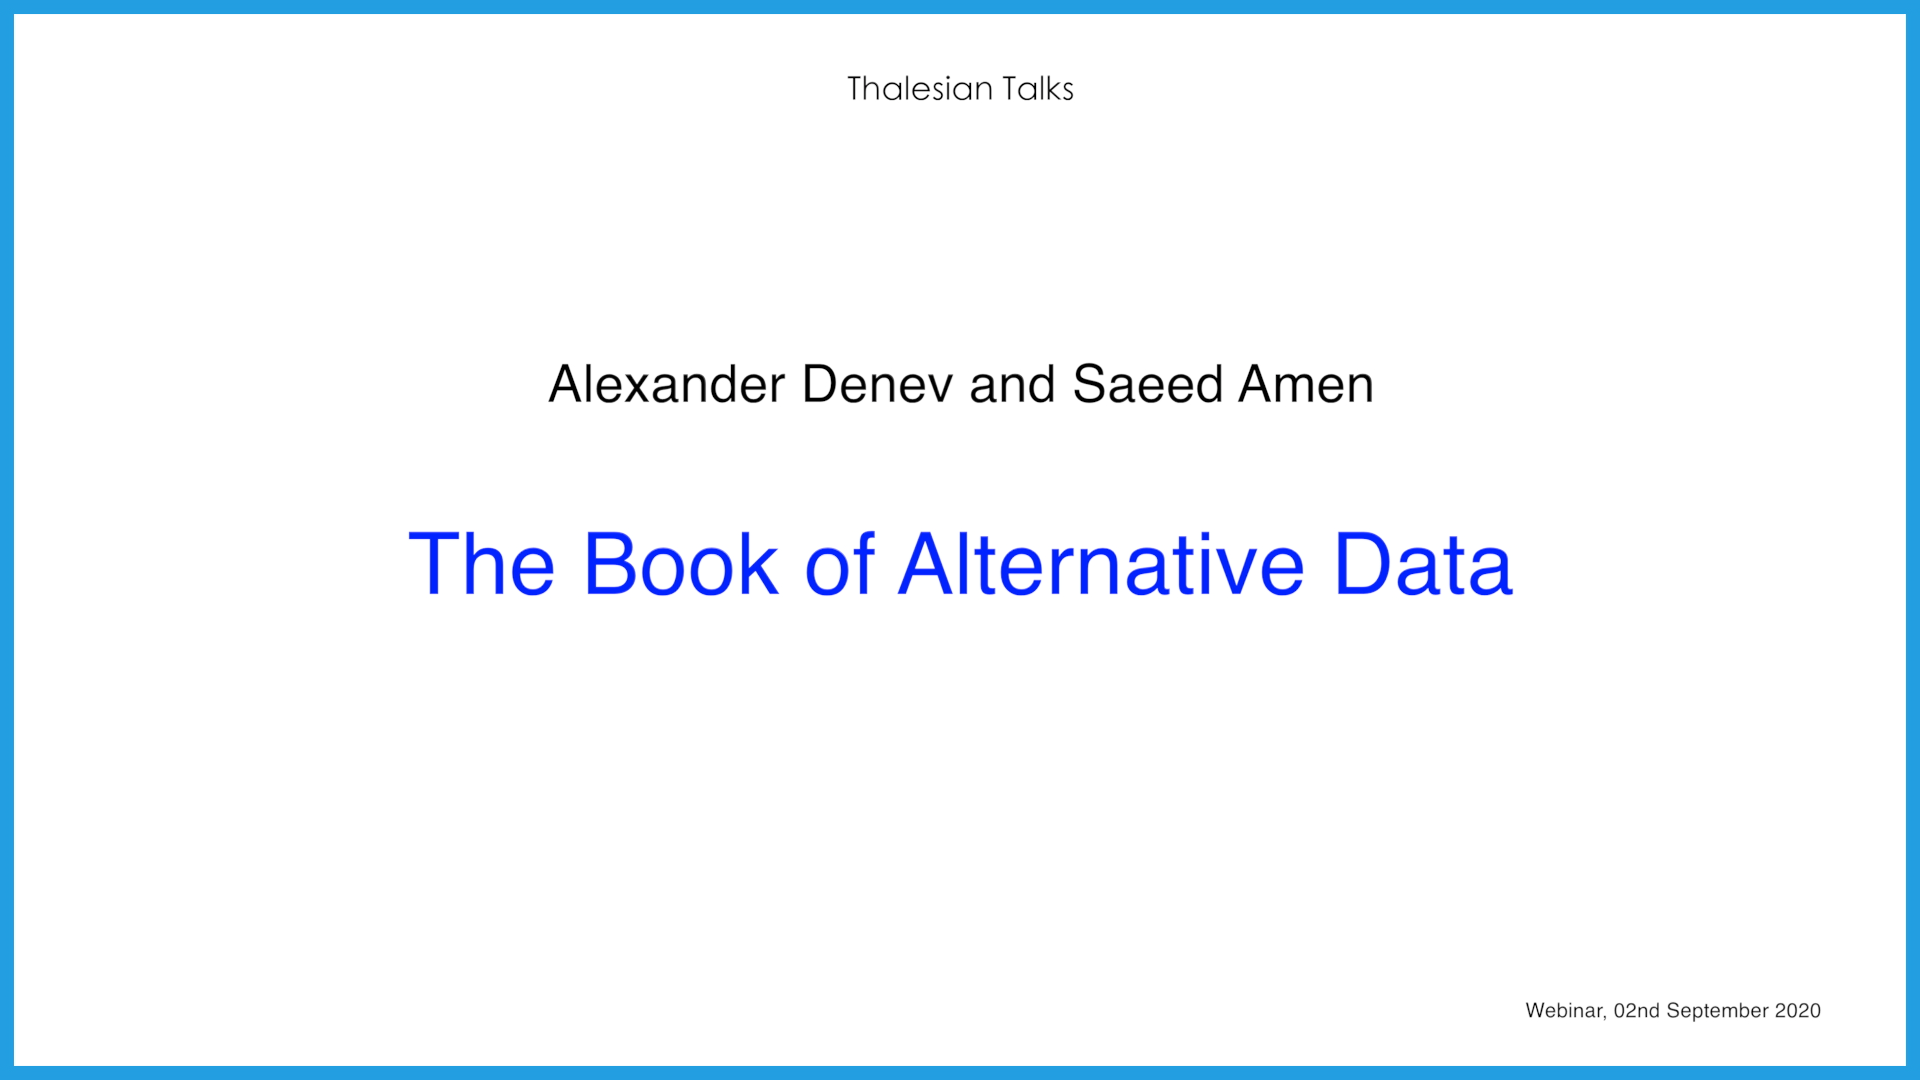 Panel: Alexander Denev and Saeed Amen: The Book of Alternative Data